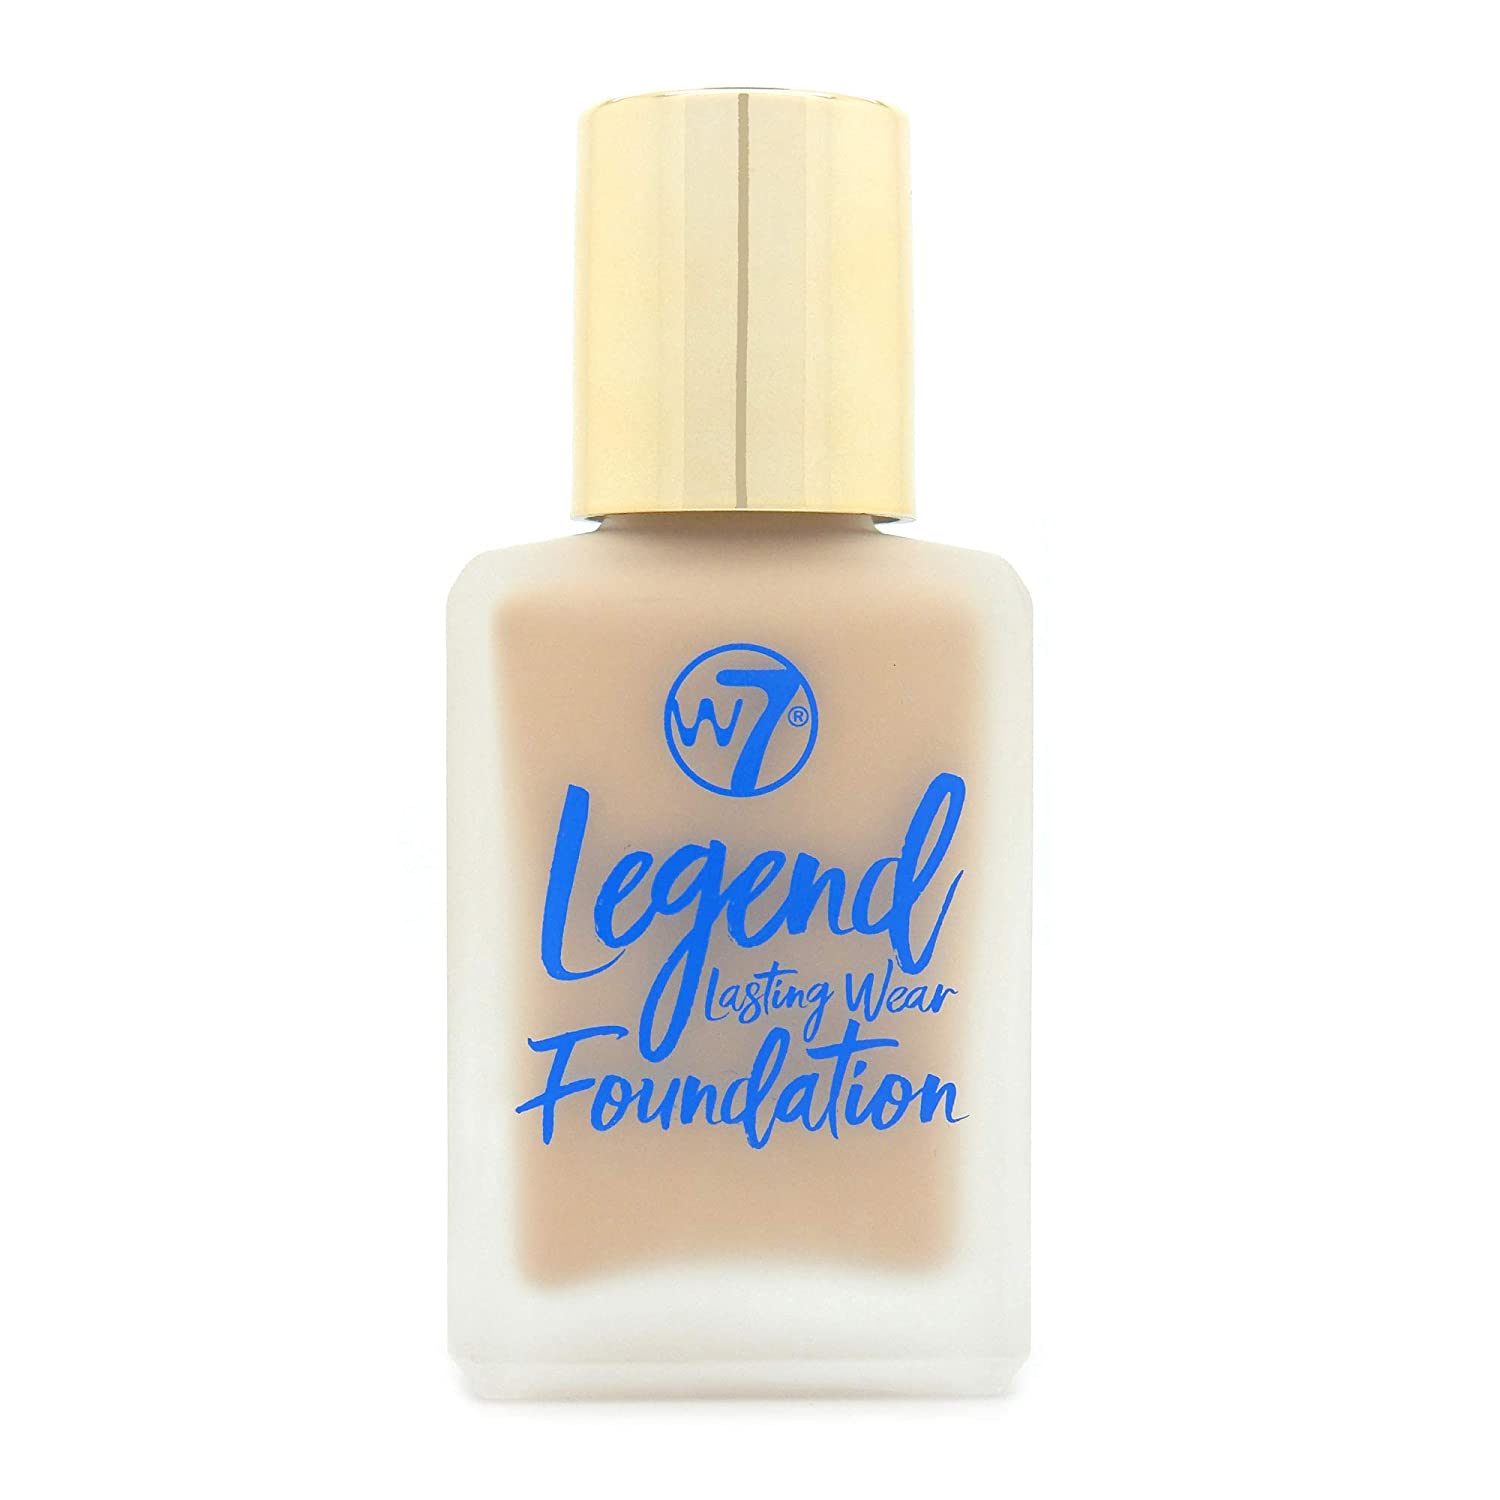 W7 Legend Long-Lasting Liquid Financial sales sale Foundation Brand new Rich Creamy For and